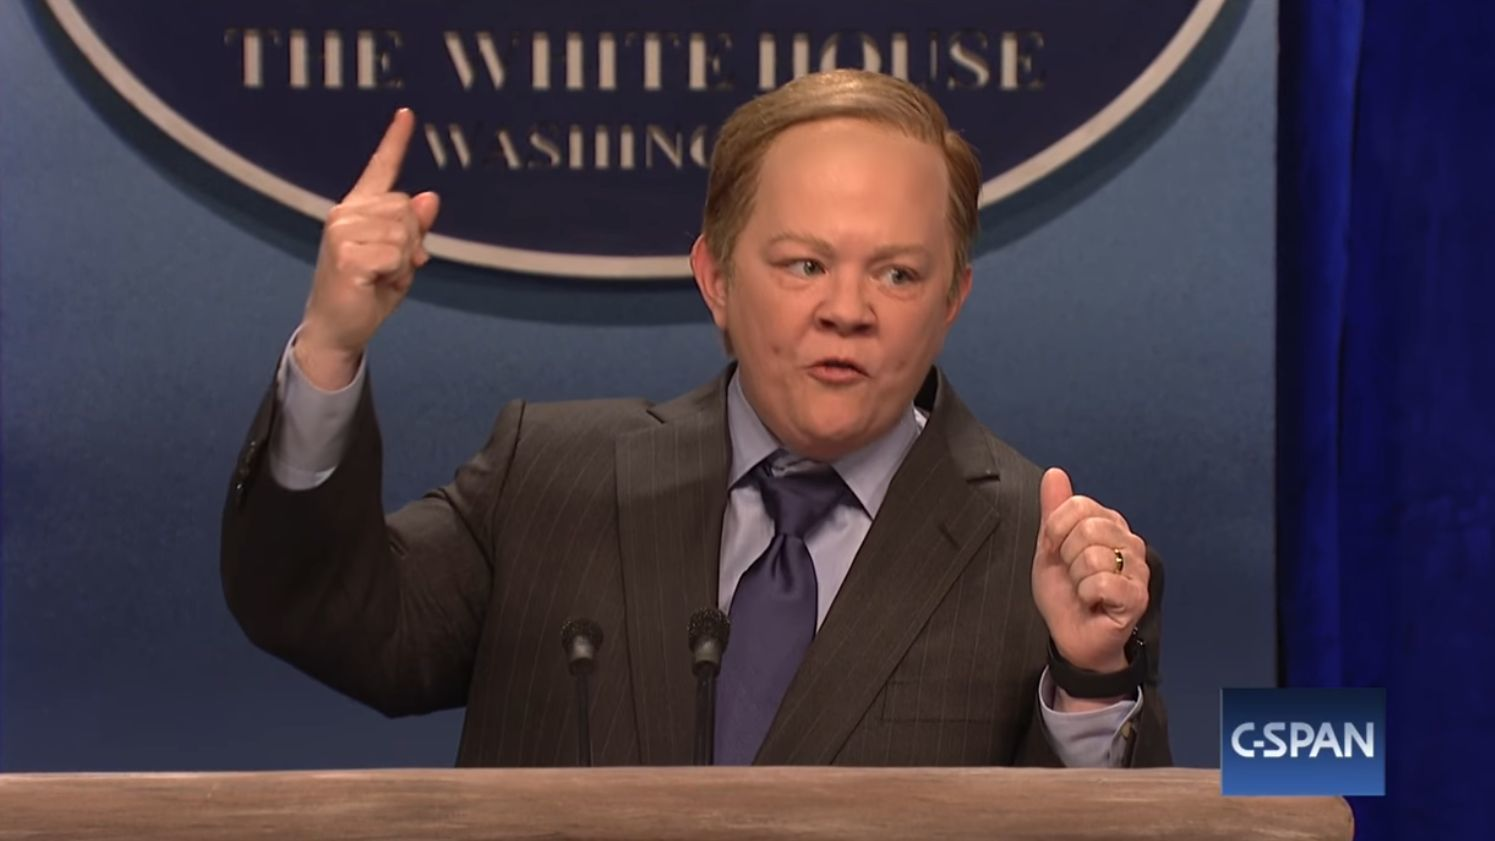 ... is scathing as Sean Spicer on 'Saturday Night Live' - LA Times